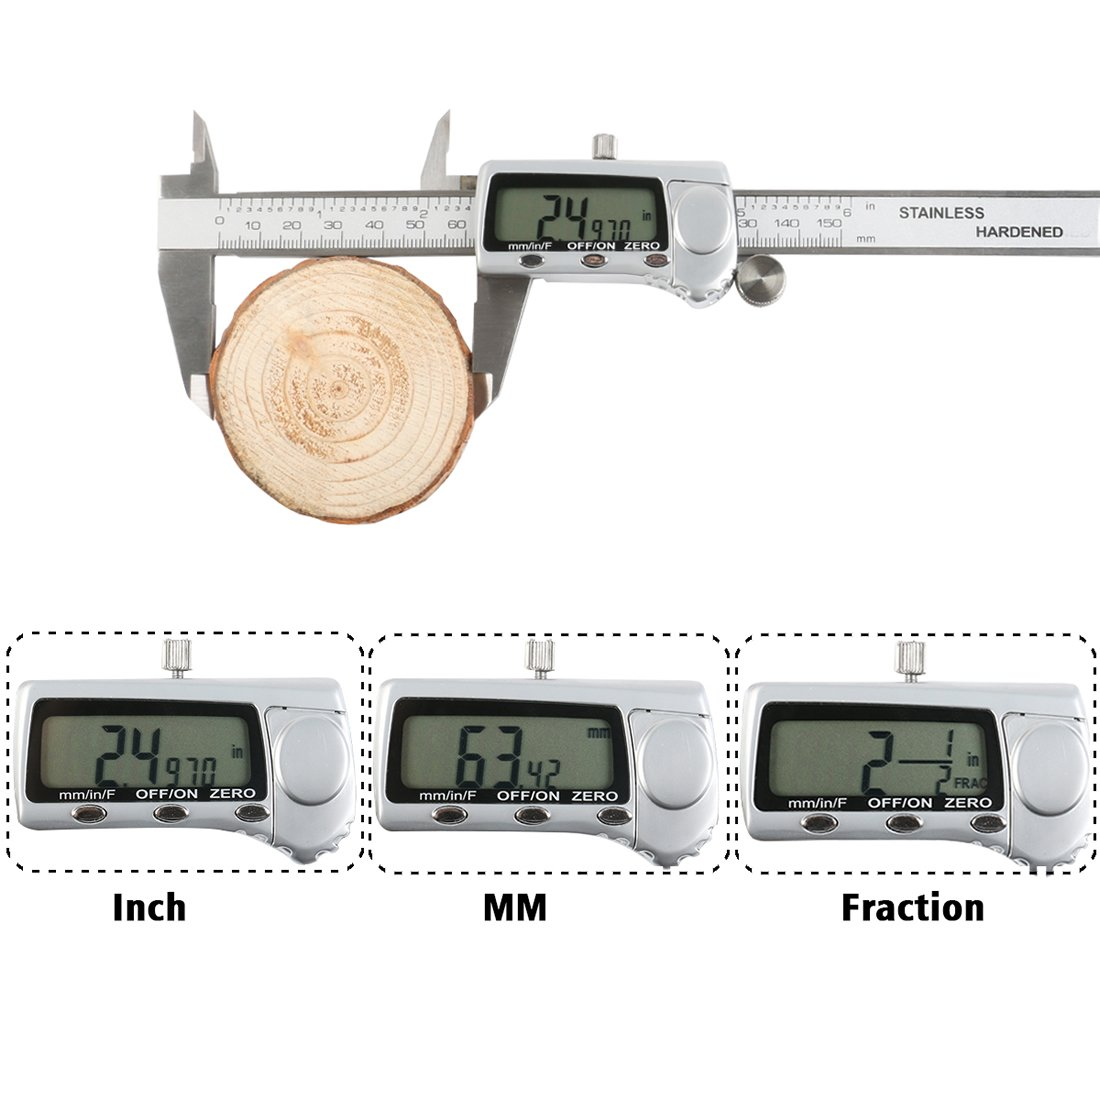 Digital Vernier Caliper OKPOW Inch Metric Fractions Conversion Stainless Steel Vernier Gauge 0-6 Inch/150mm with LCD Display Measuring Tools (Silver) F-19